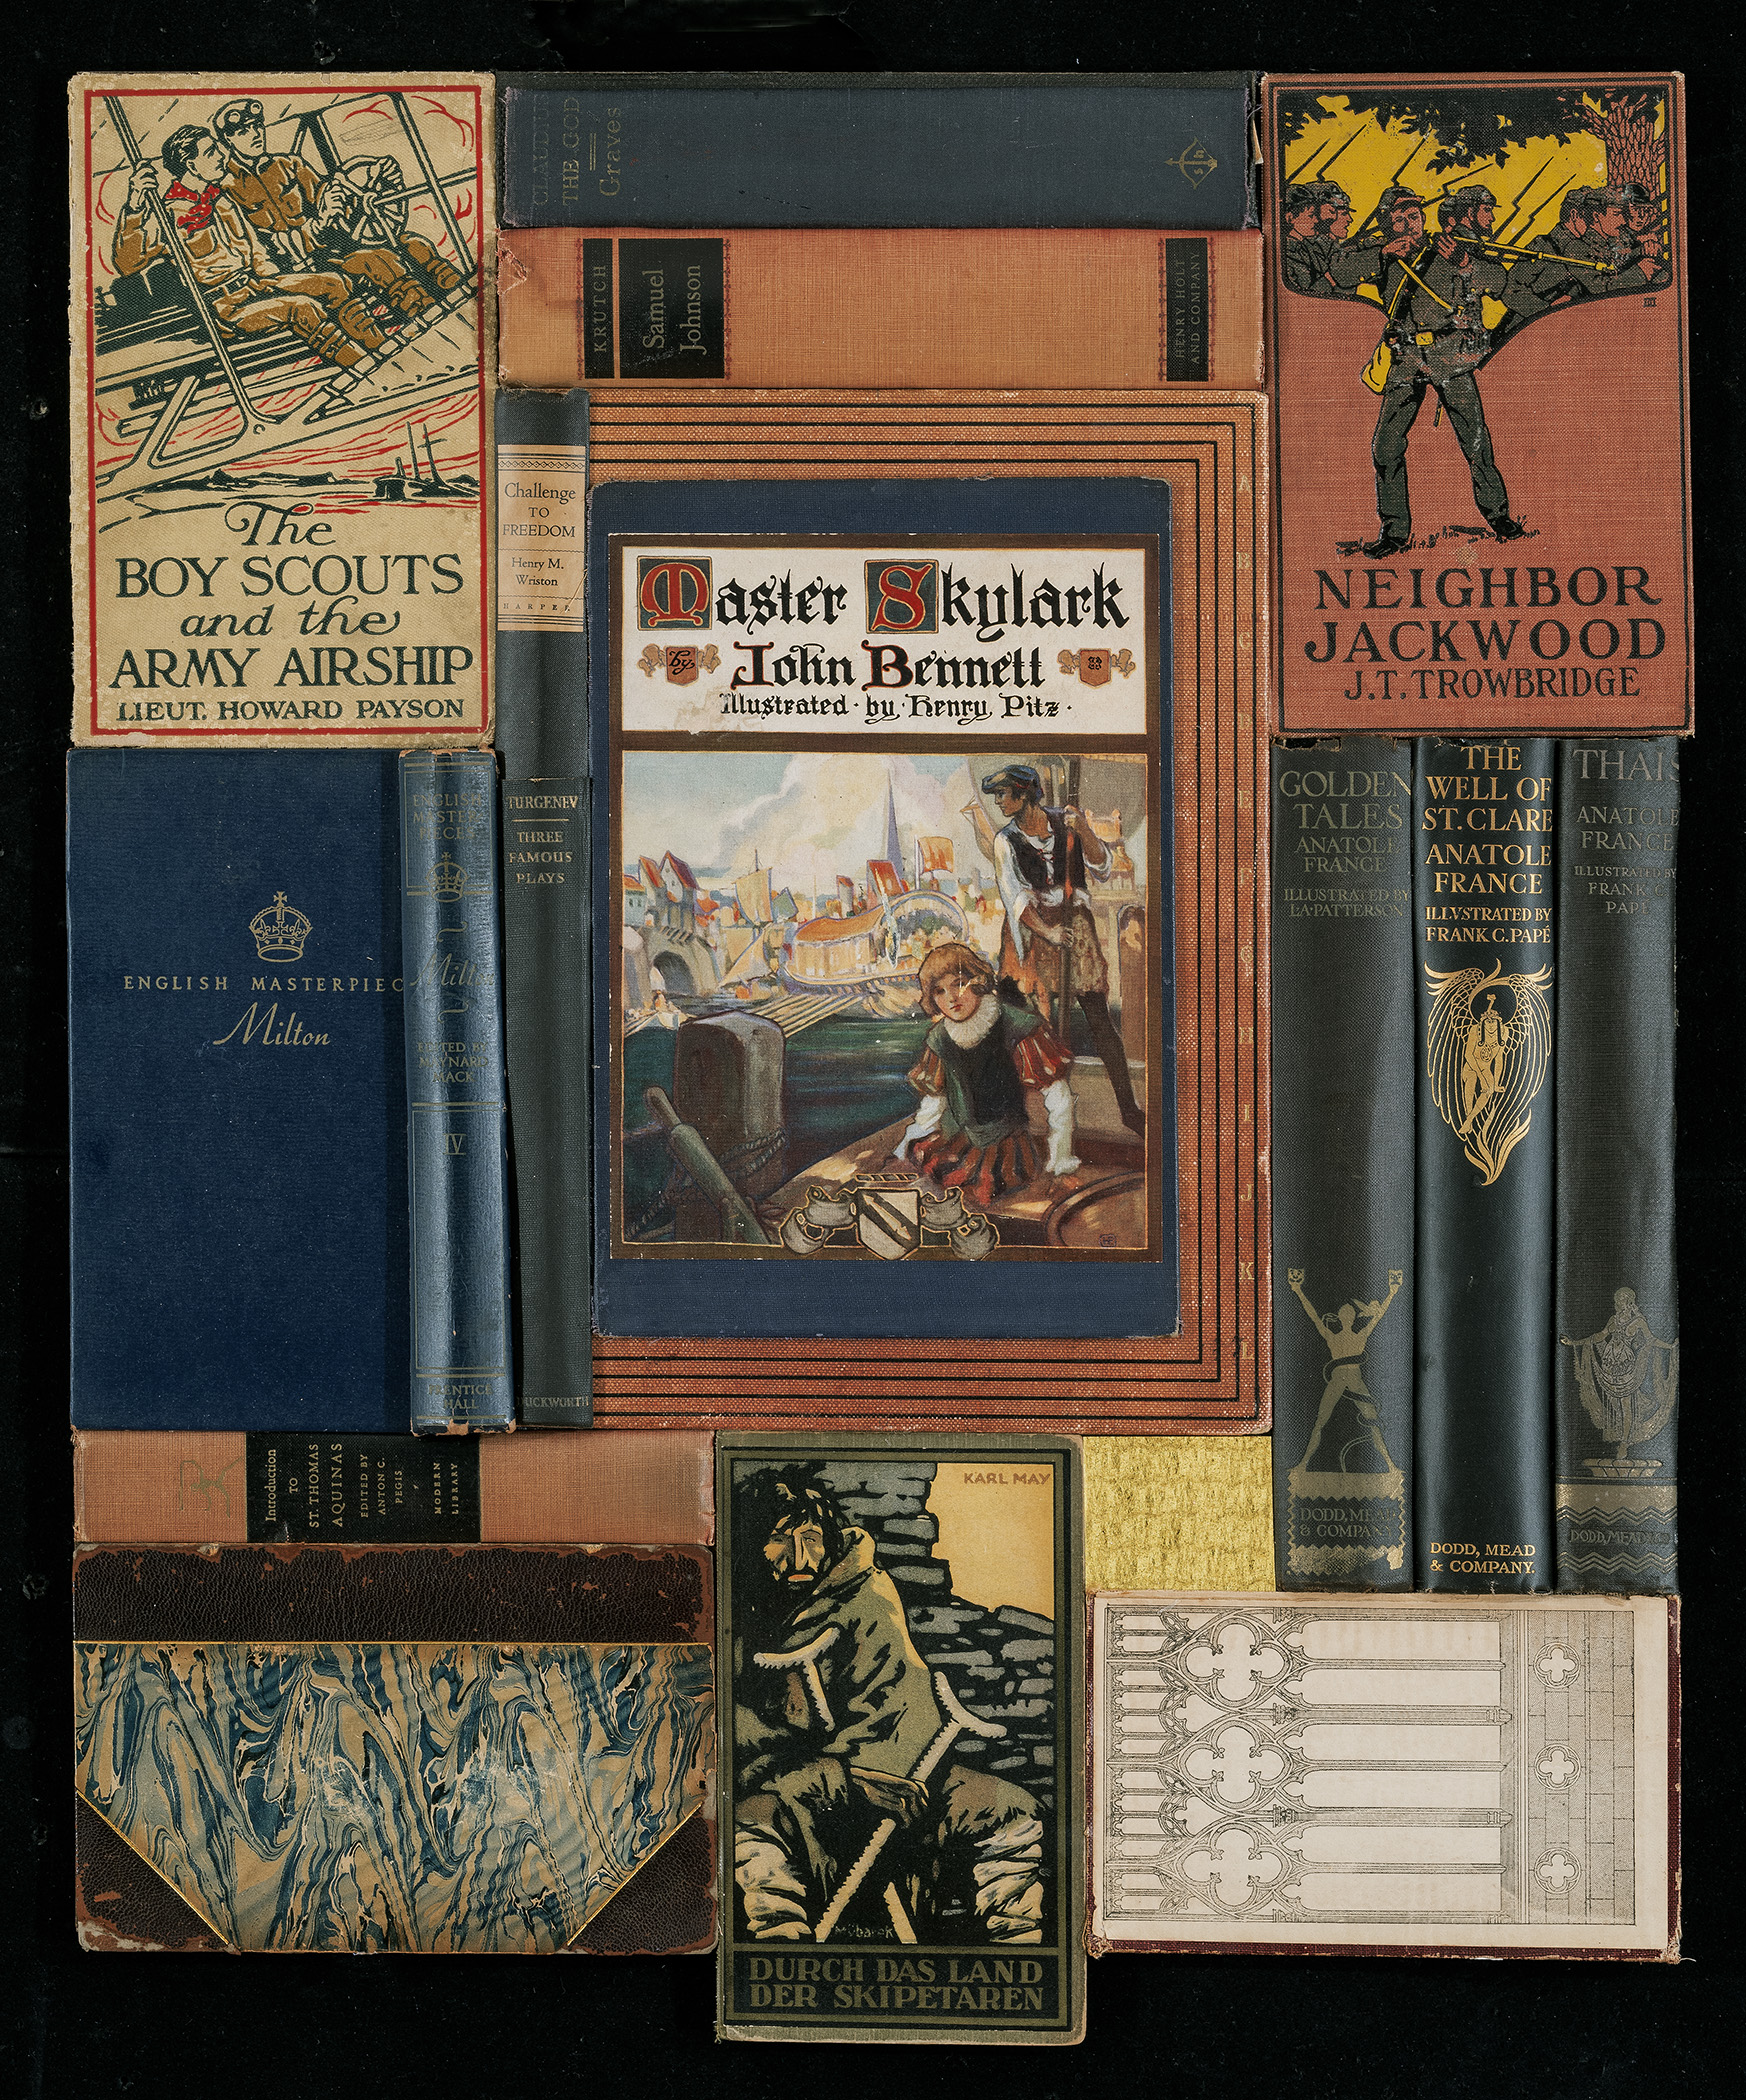 Assemblage of book covers